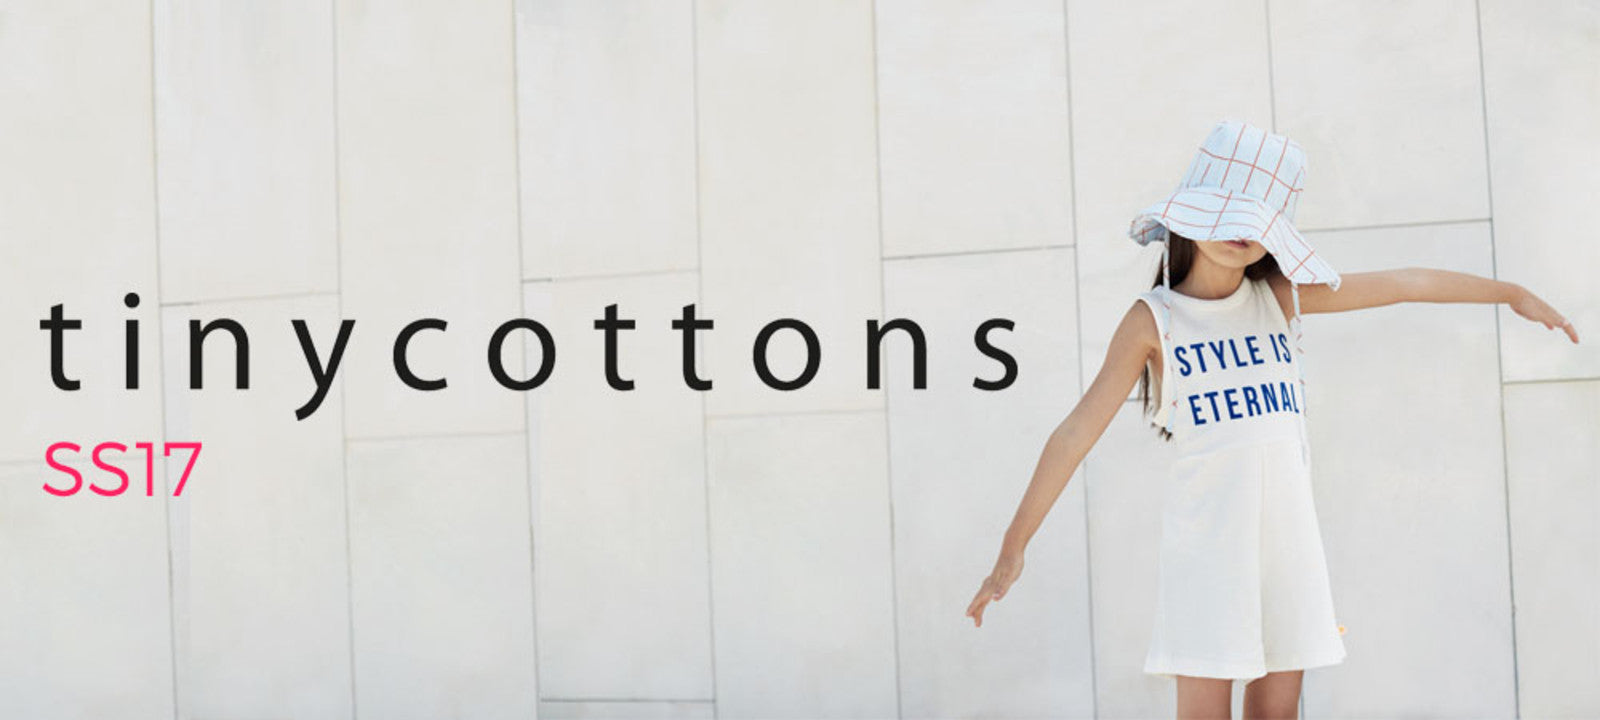 Tinycottons SS17 'A Tribute To' at Yellow Lolly Children's Fashion Boutique